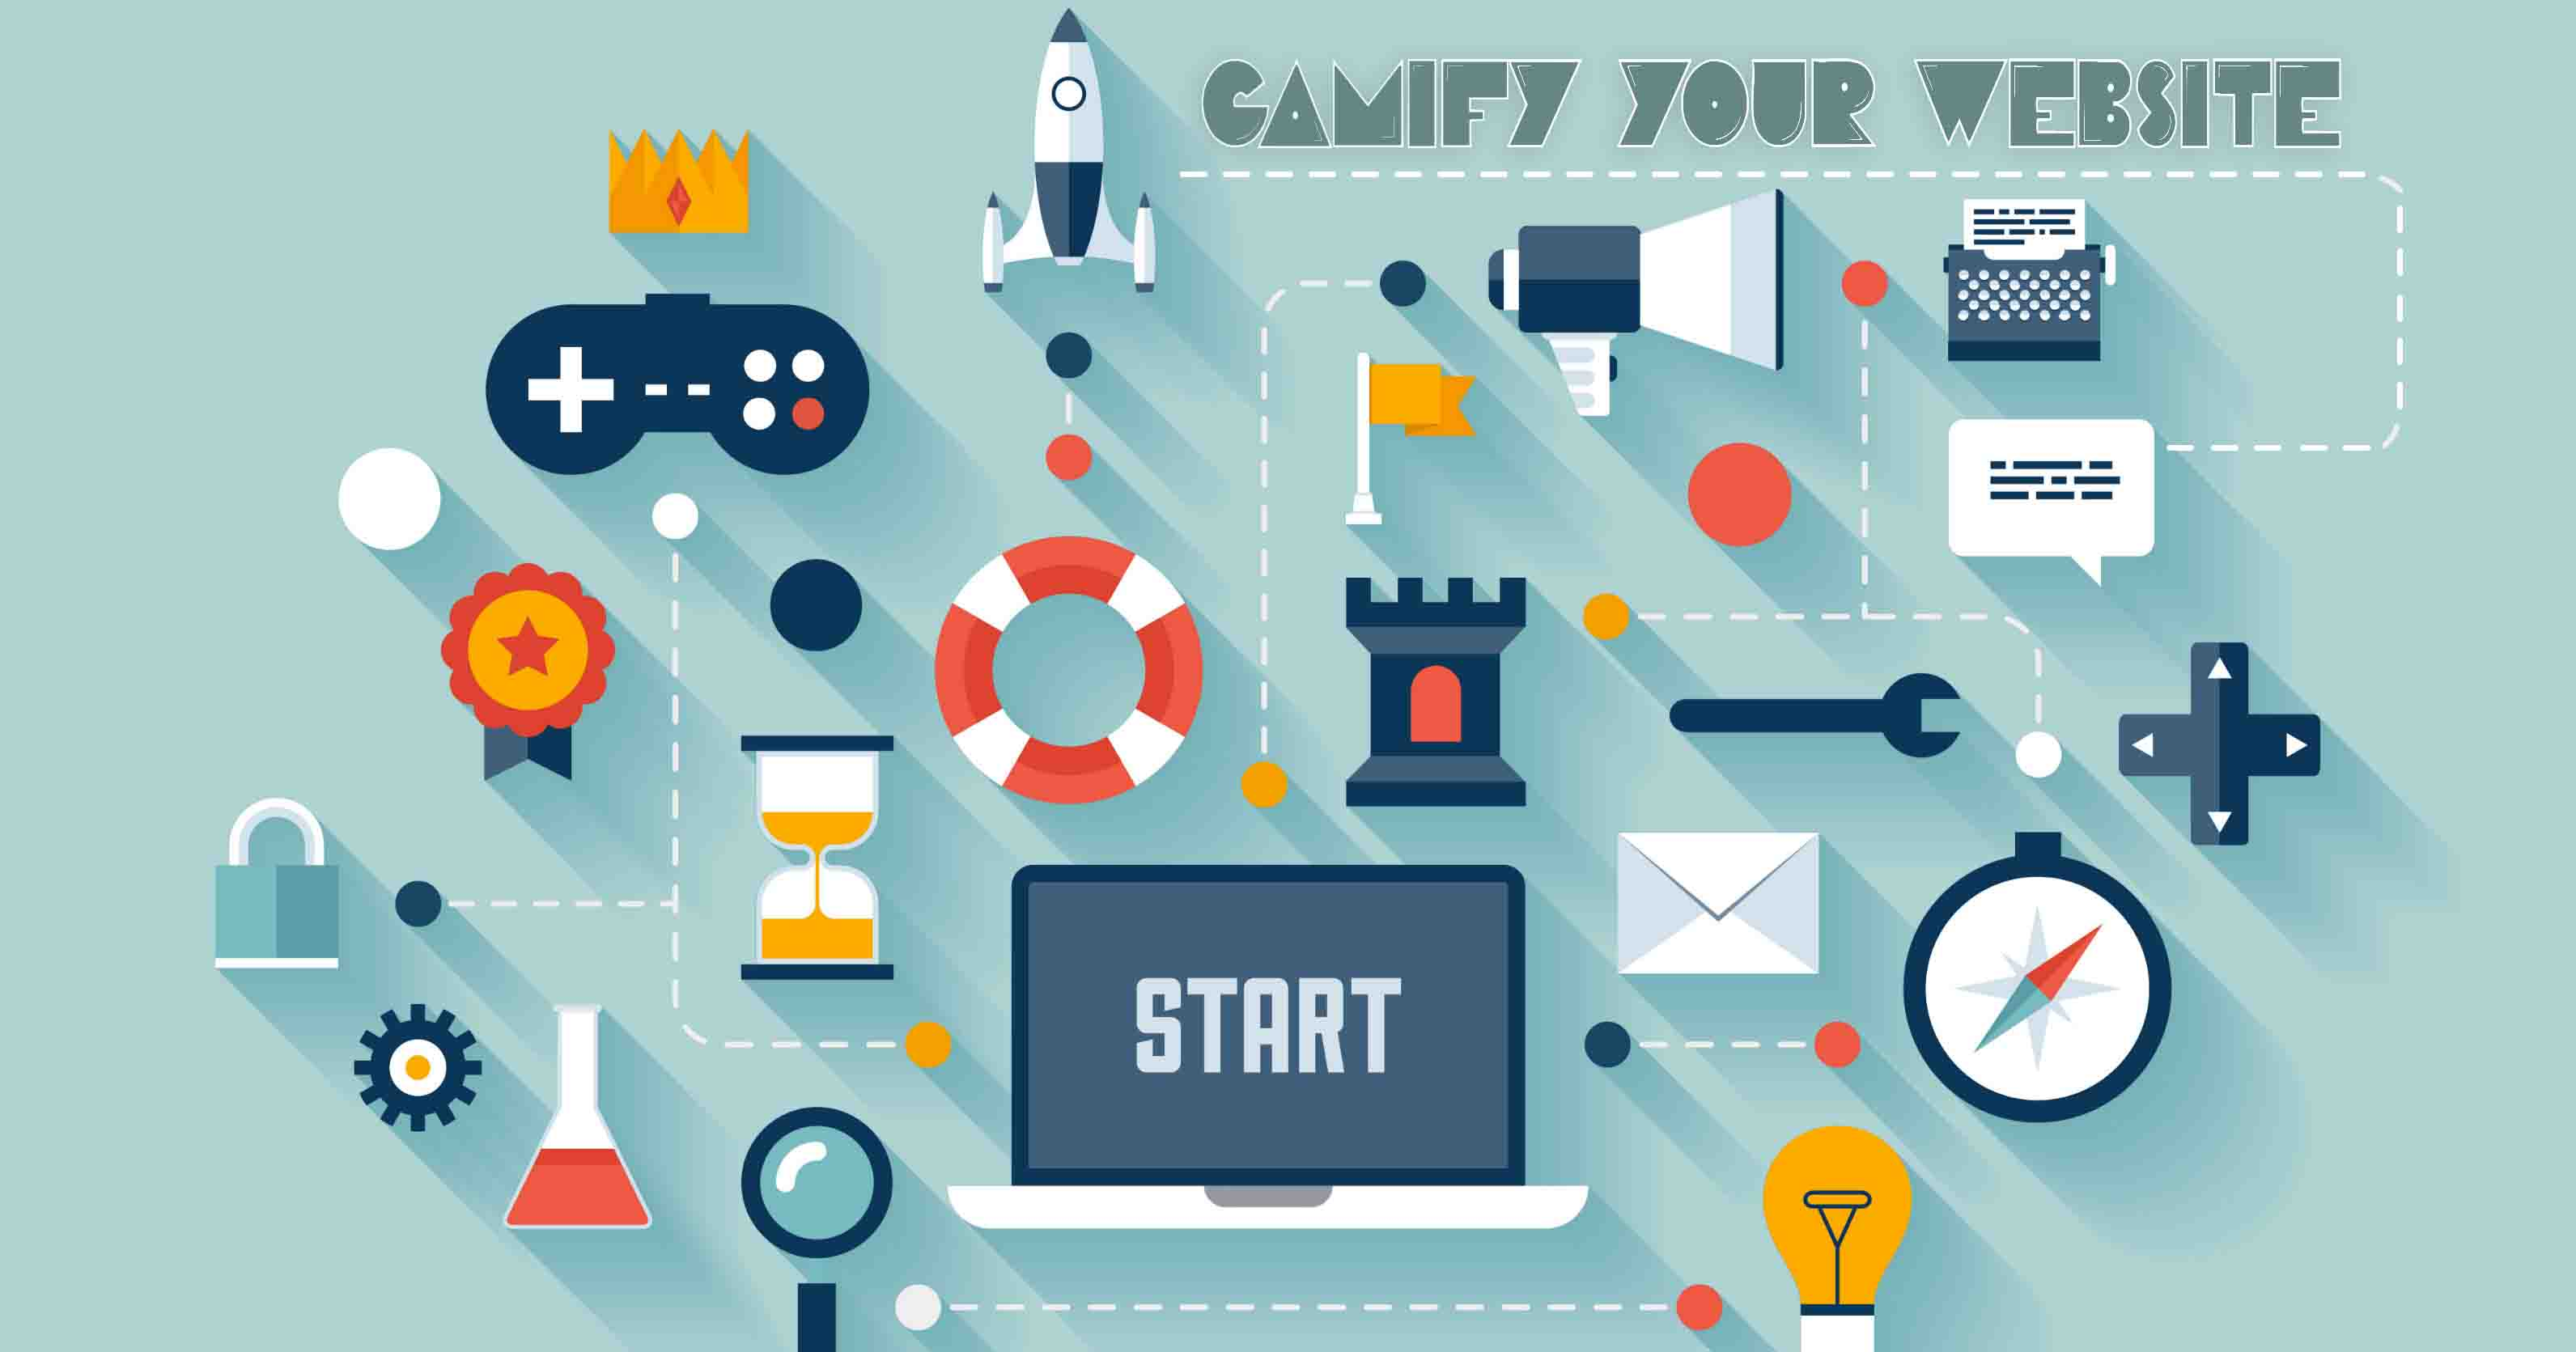 Gamify Your Website